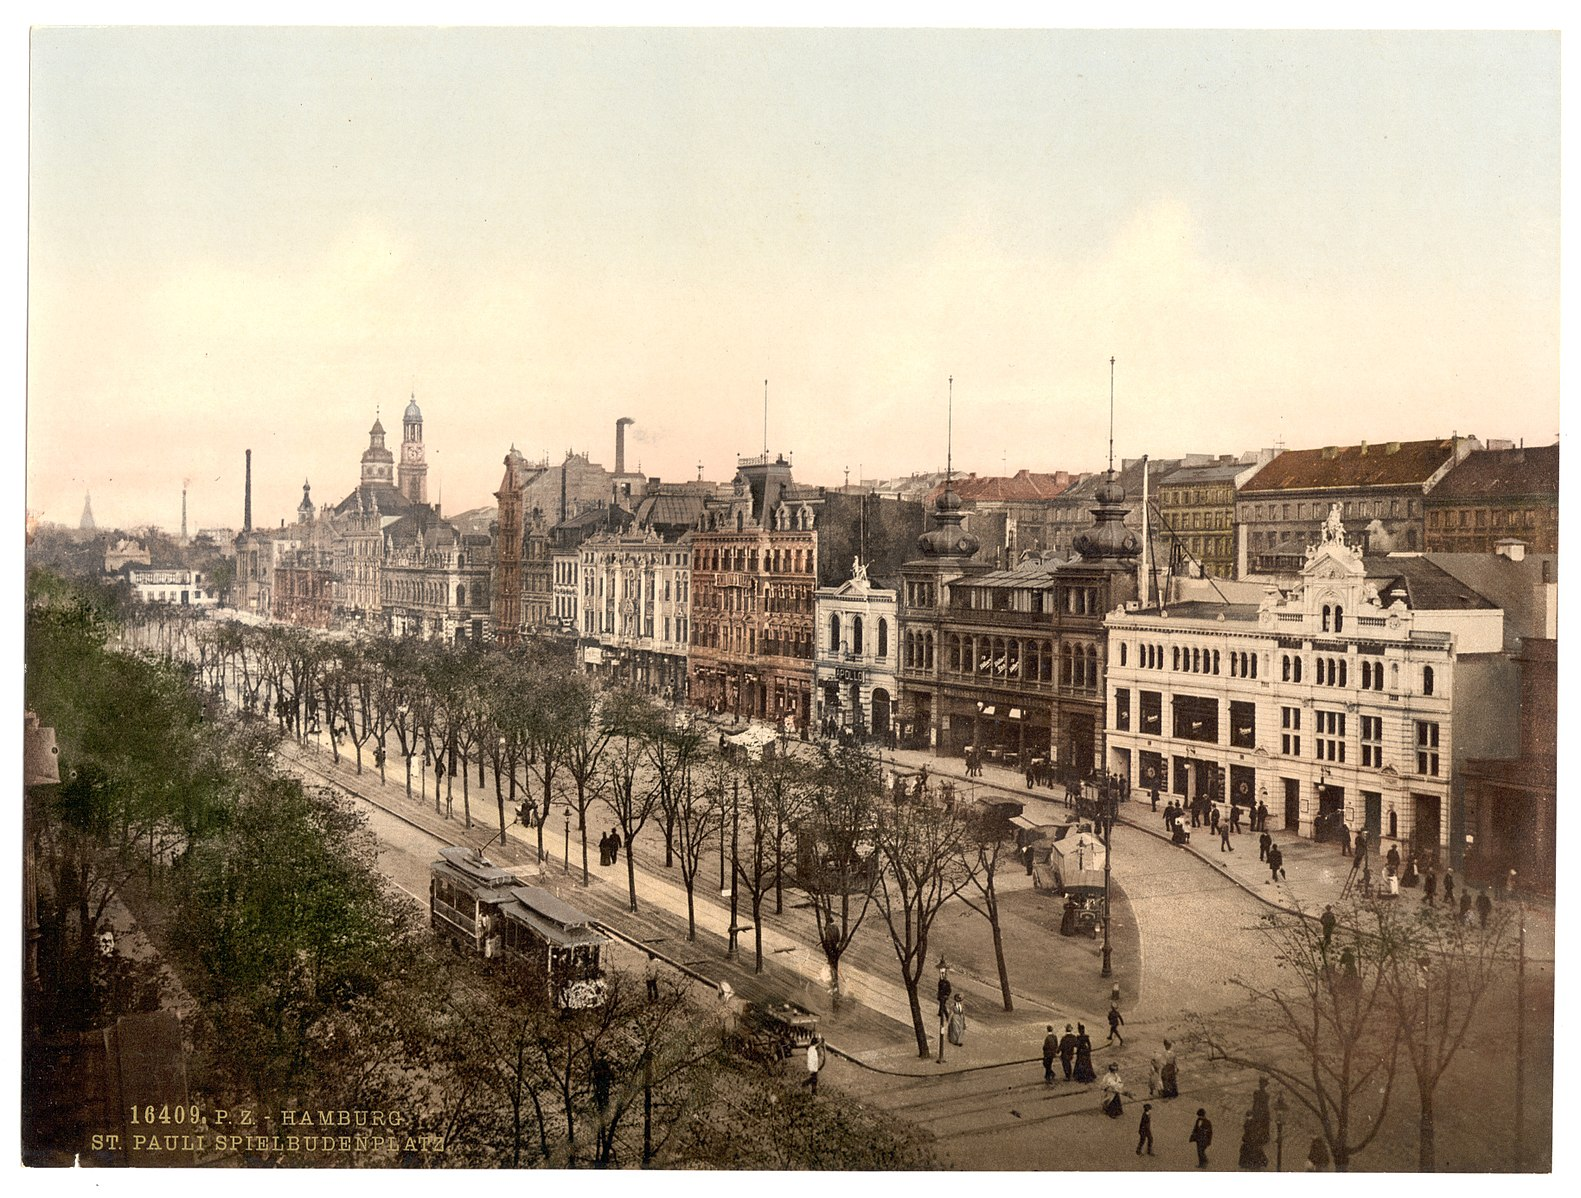 Spielbudenplatz um 1905 / Photochrom Print Collection [Public domain]